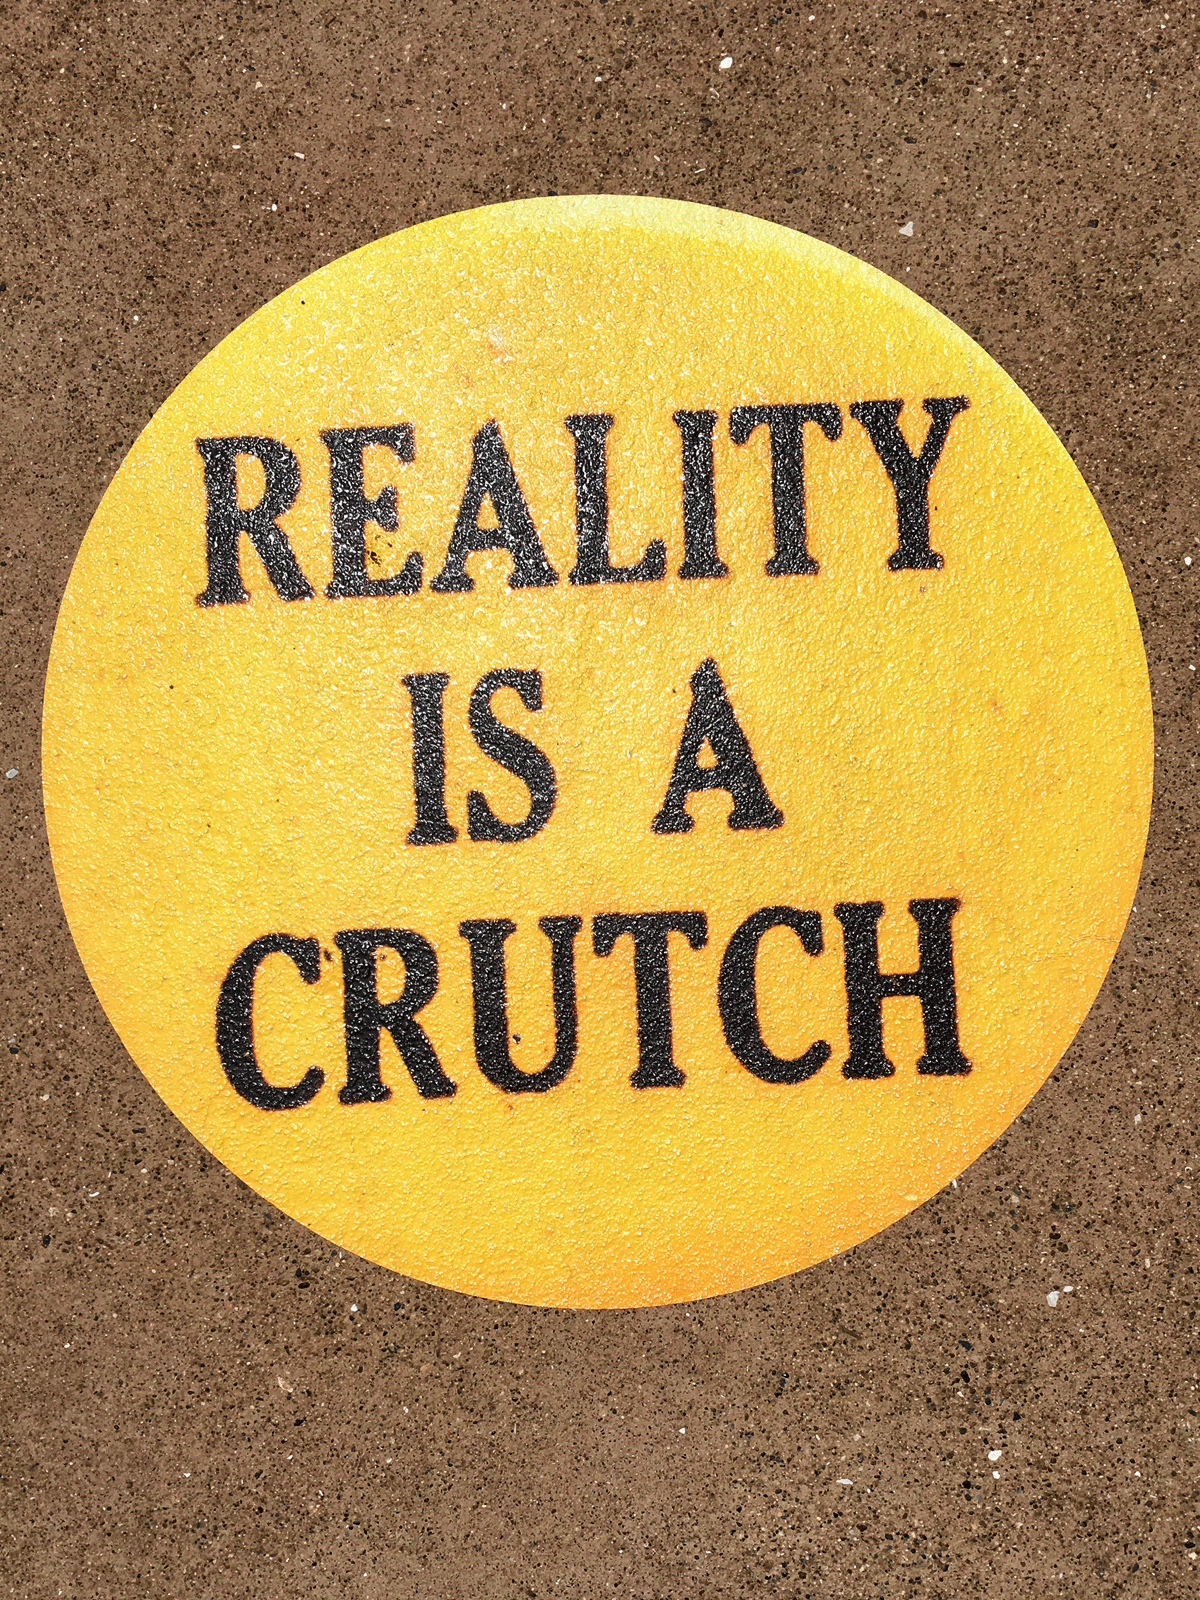 Reality is a crutch